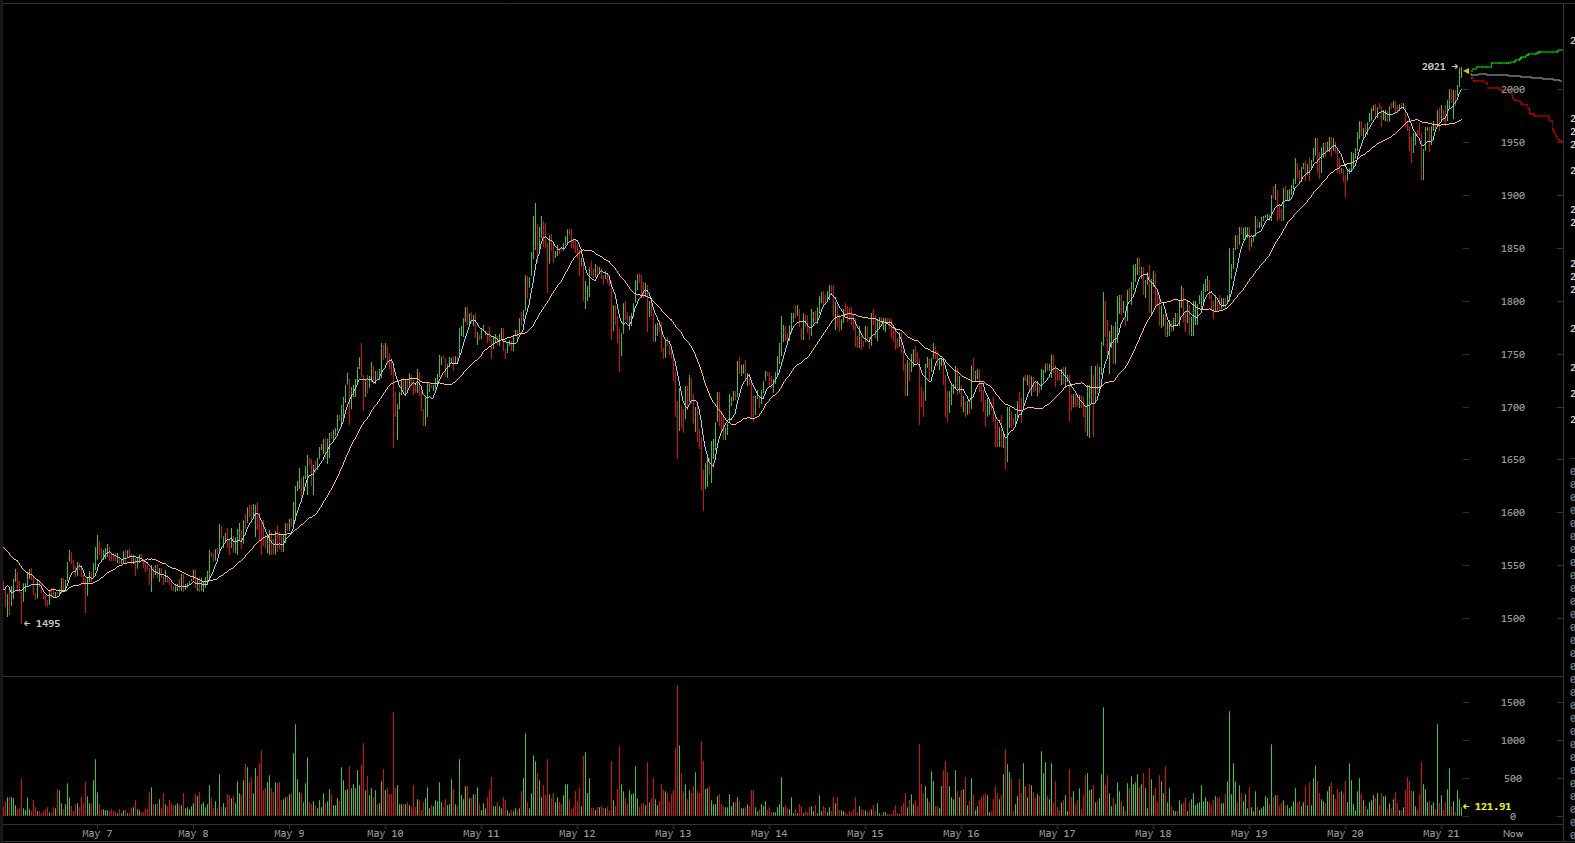 Bitcoin Price Breaks $2,000 in Historic All-Time High